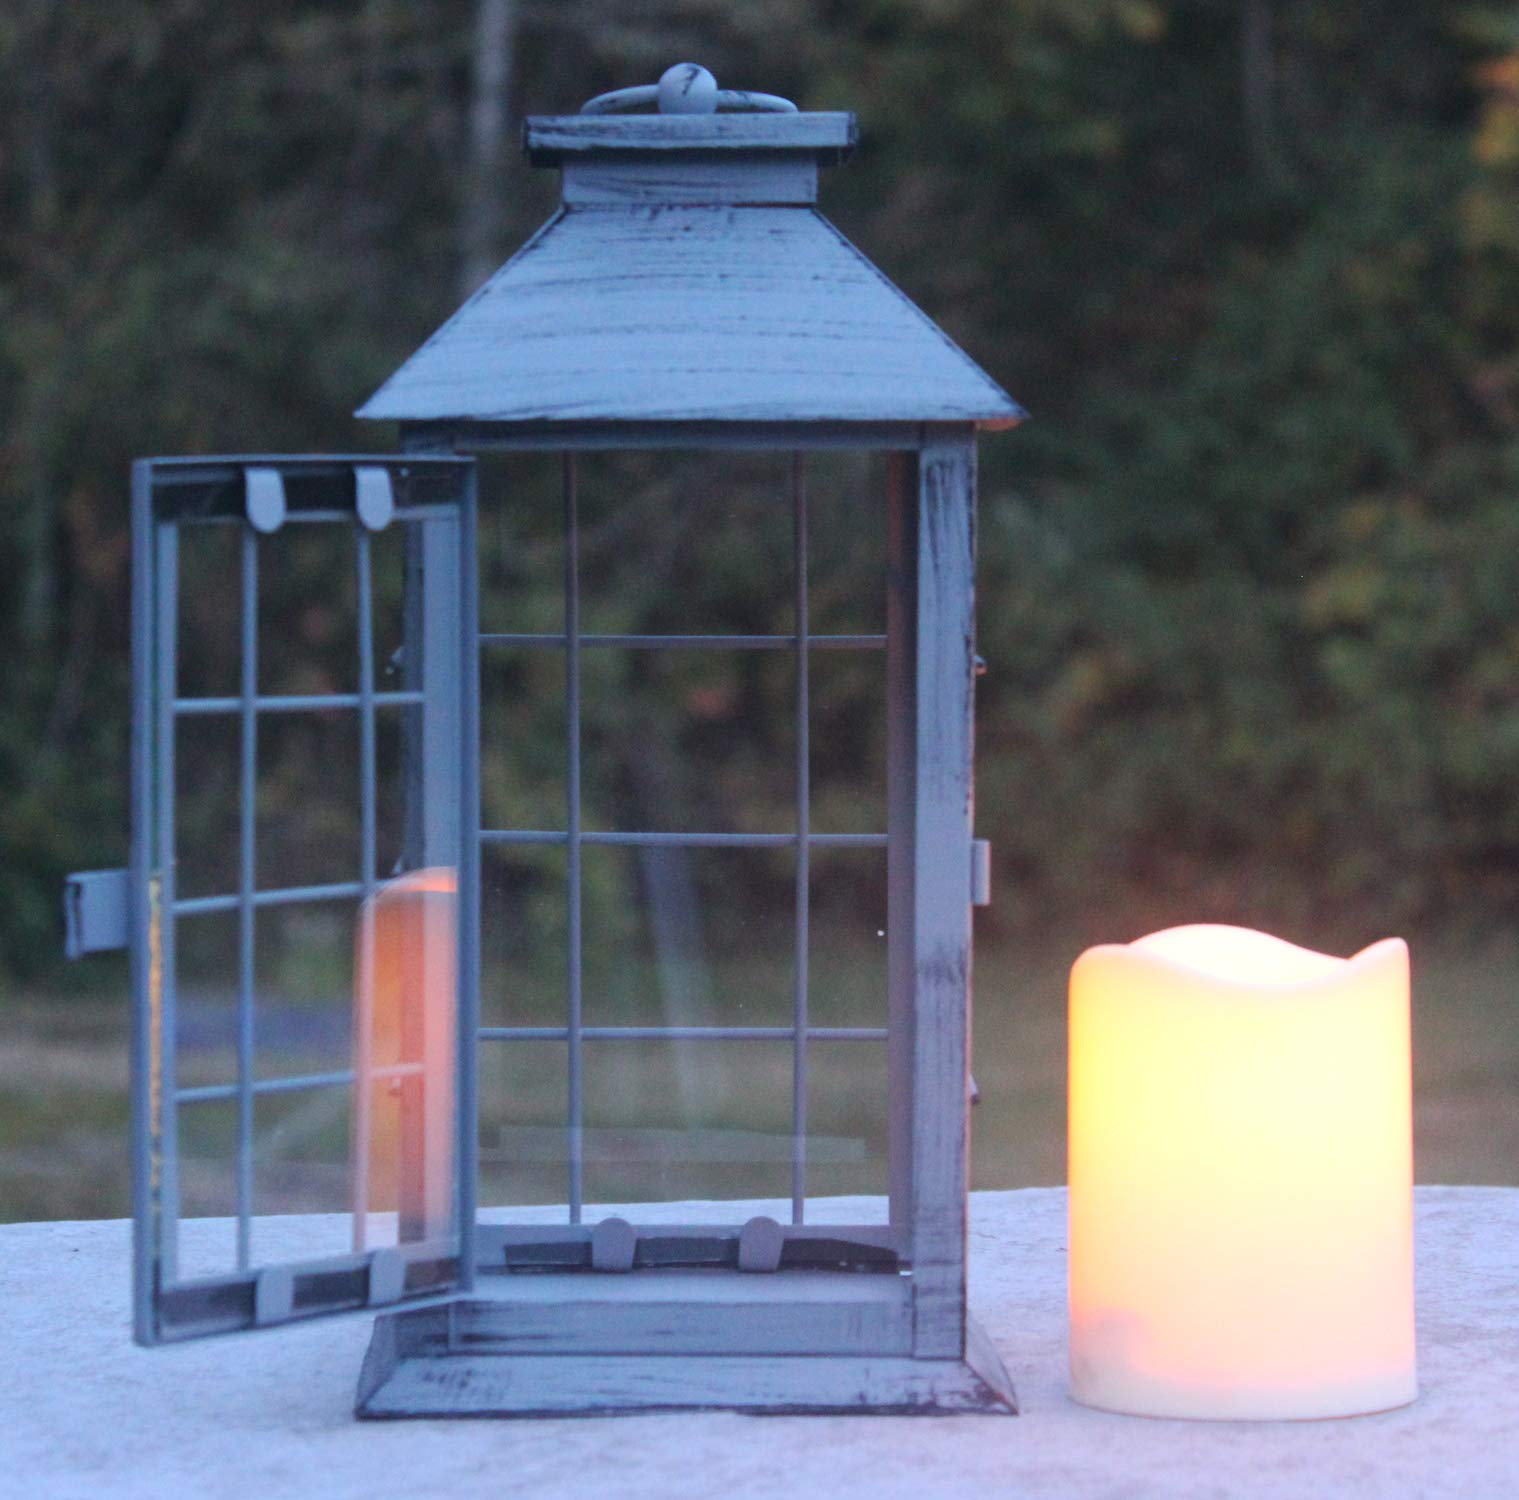 Seraphic Country Style Gray Rustic Metal Lantern with Flickering Flameless LED Candle, Case of 6 by Seraphic (Image #5)